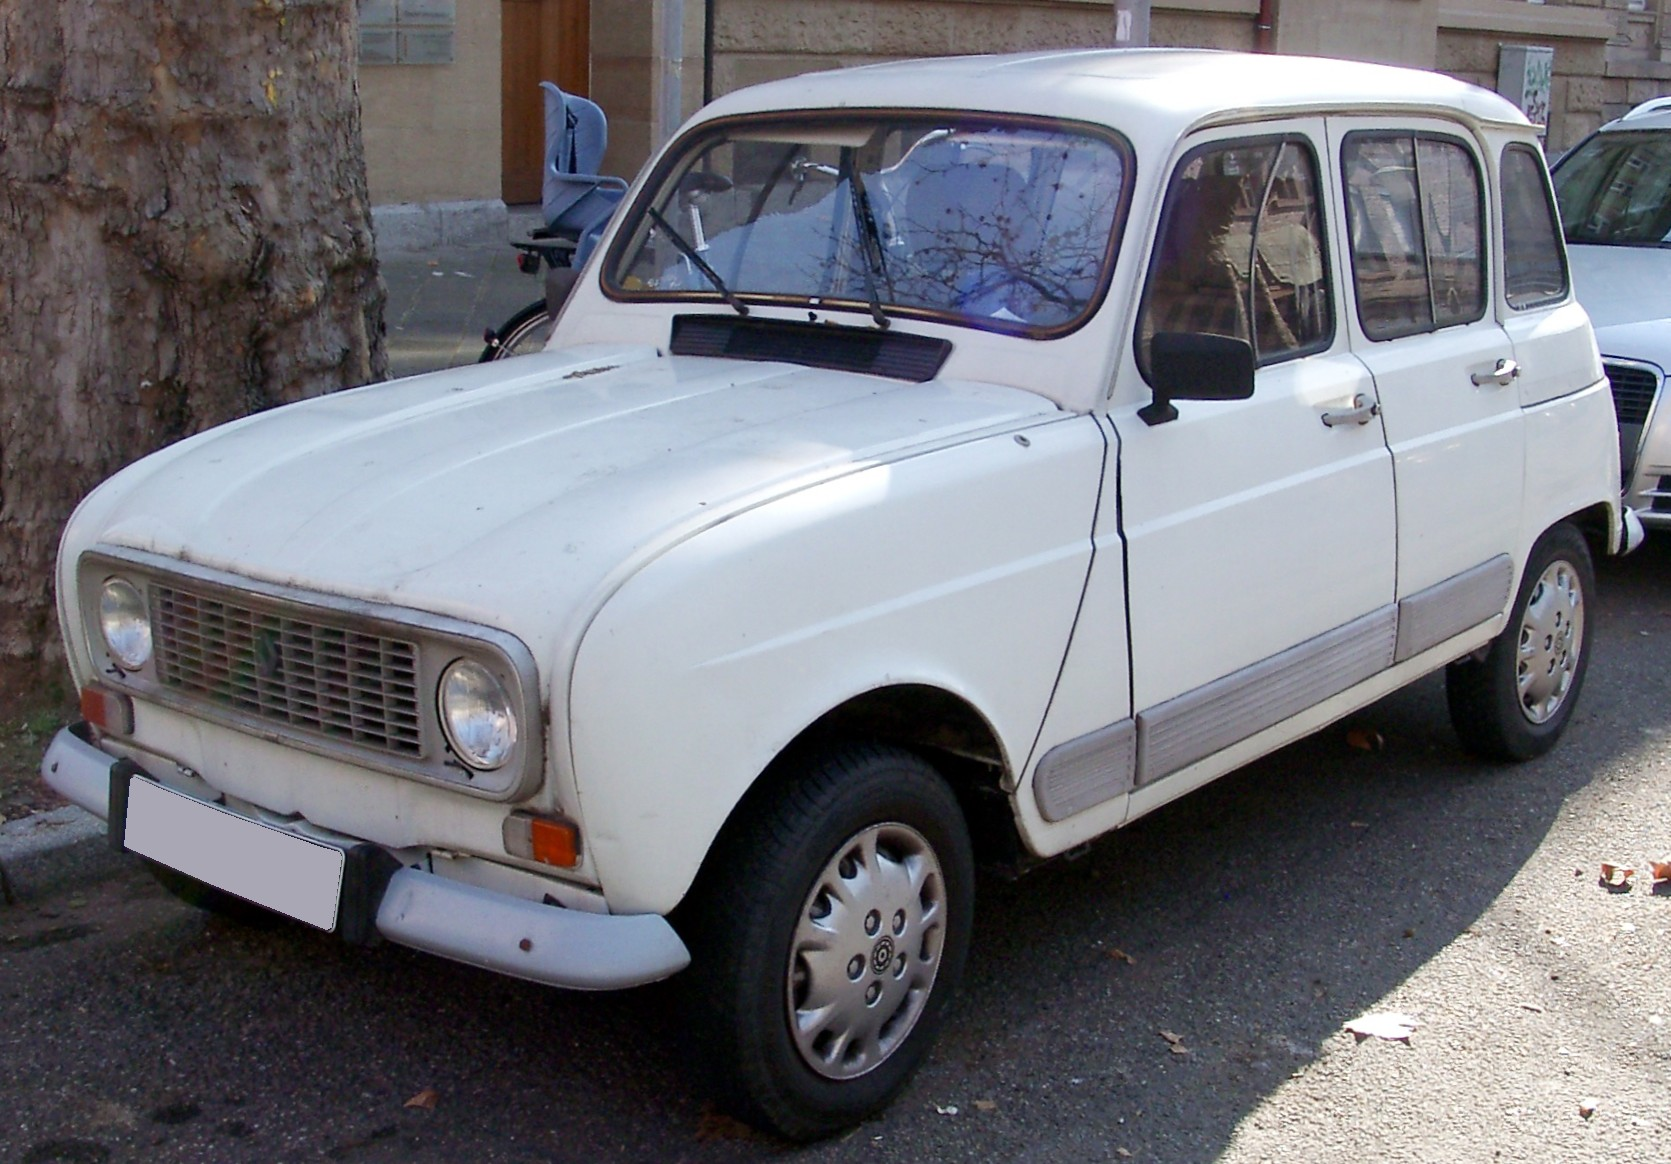 blanche avg Renault 4 front 20080224